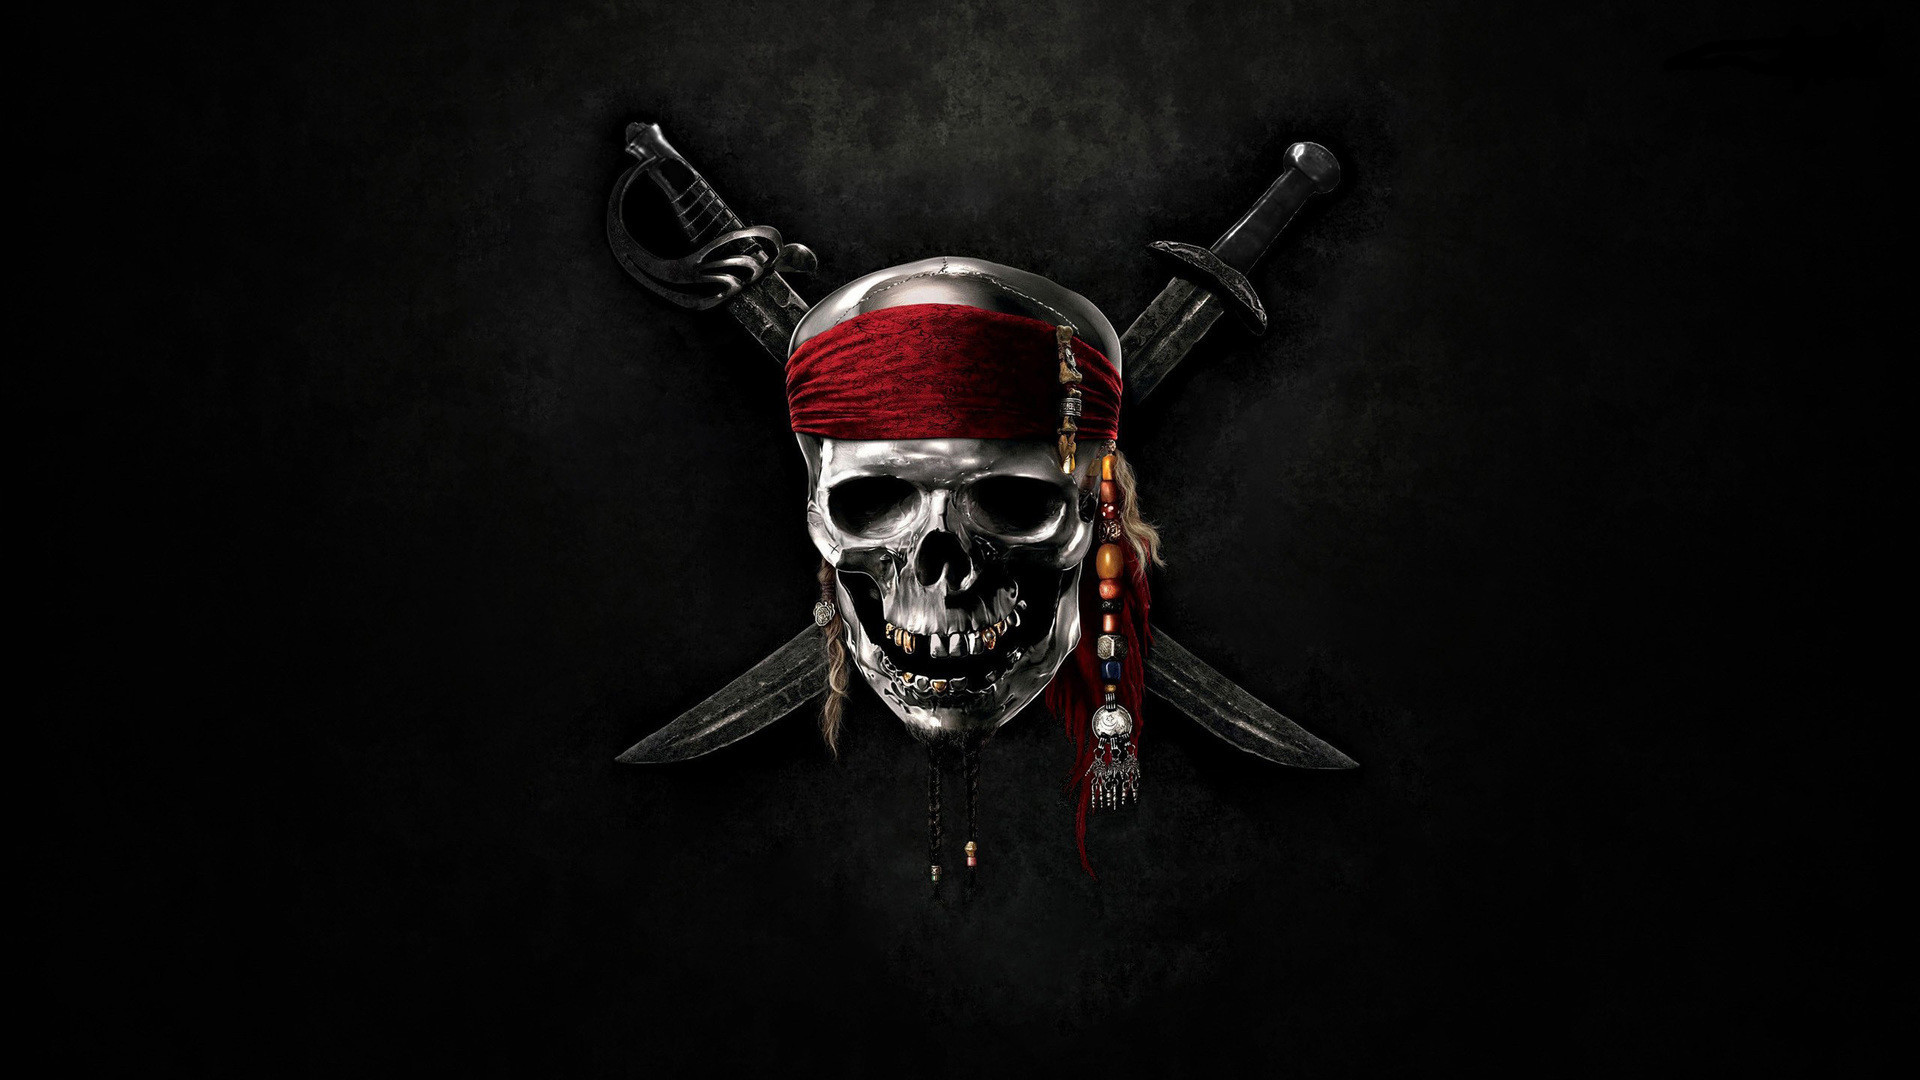 1920x1080 Pirate Flag Wallpaper Miscellaneous Otherotherwallpapers Free